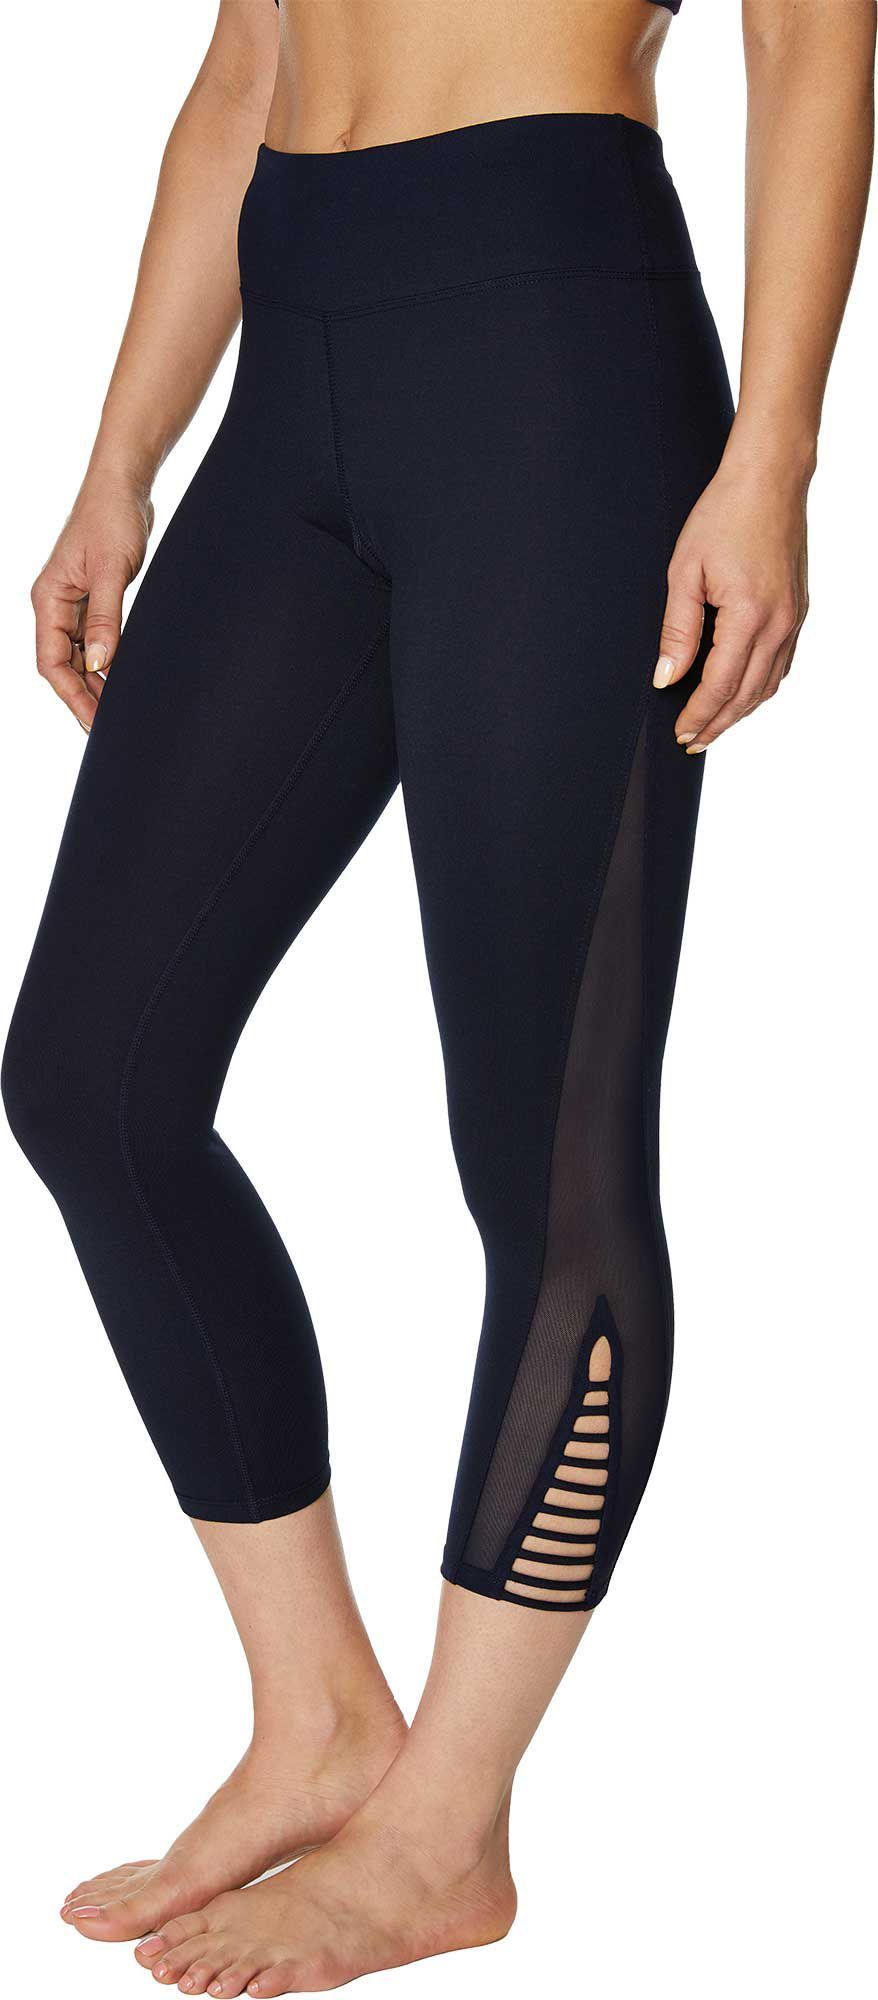 2f041e794d568 Betsey Johnson Women's Mesh Vented Crop Legging | Products | Betsey ...